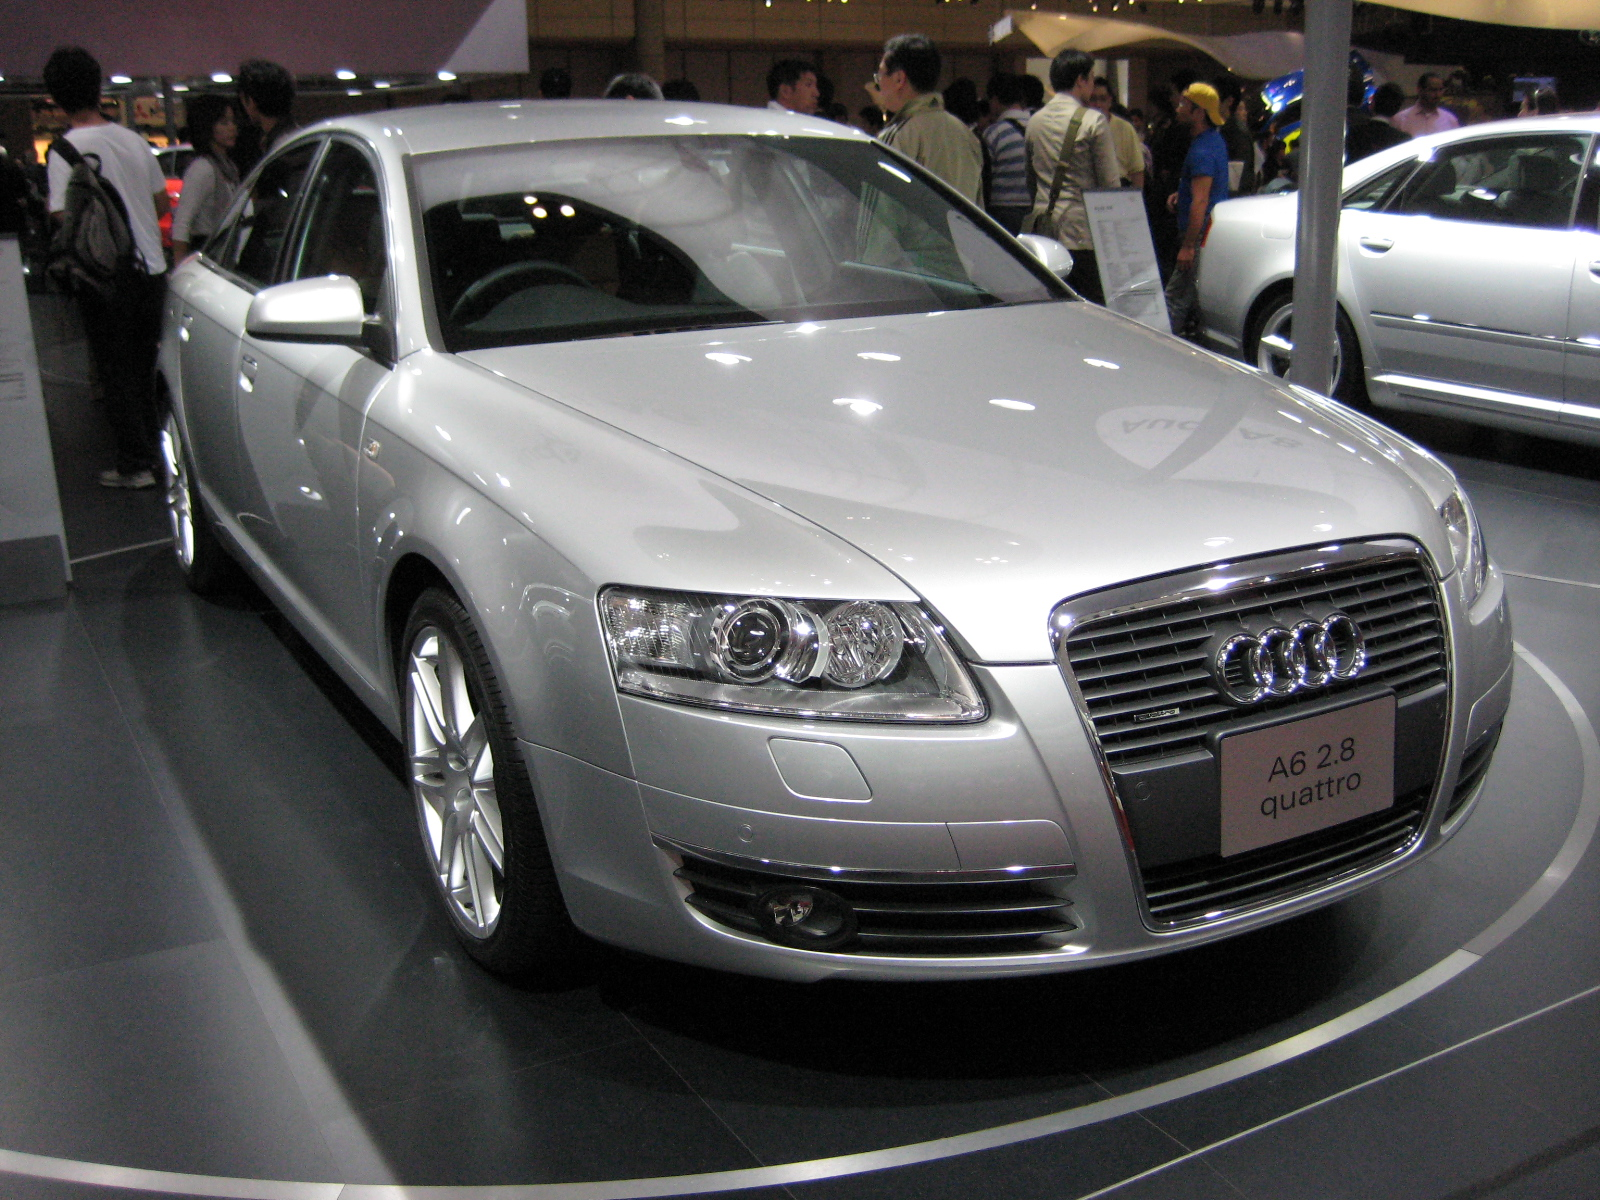 File:2007 Audi A6.JPG - Wikimedia Commons